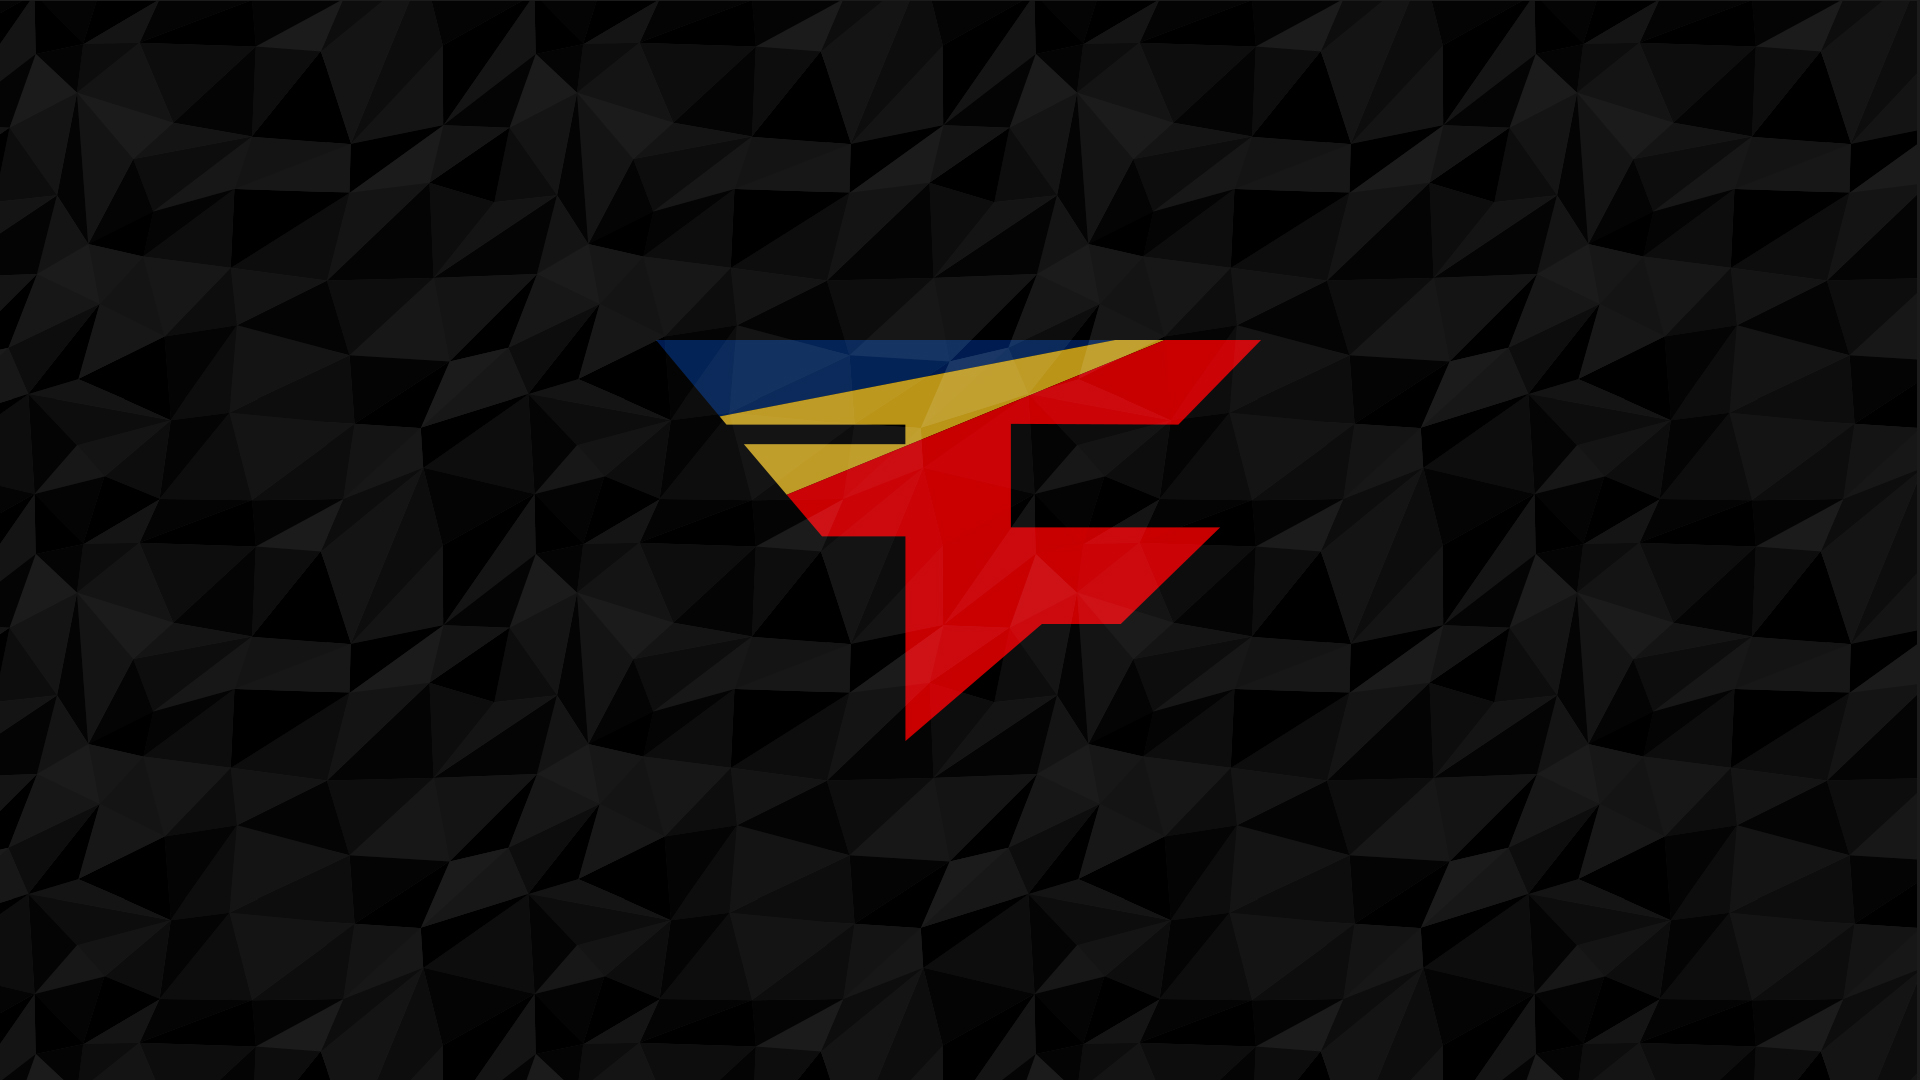 Steam Community Guide Wallpapers With Teams Cs Go